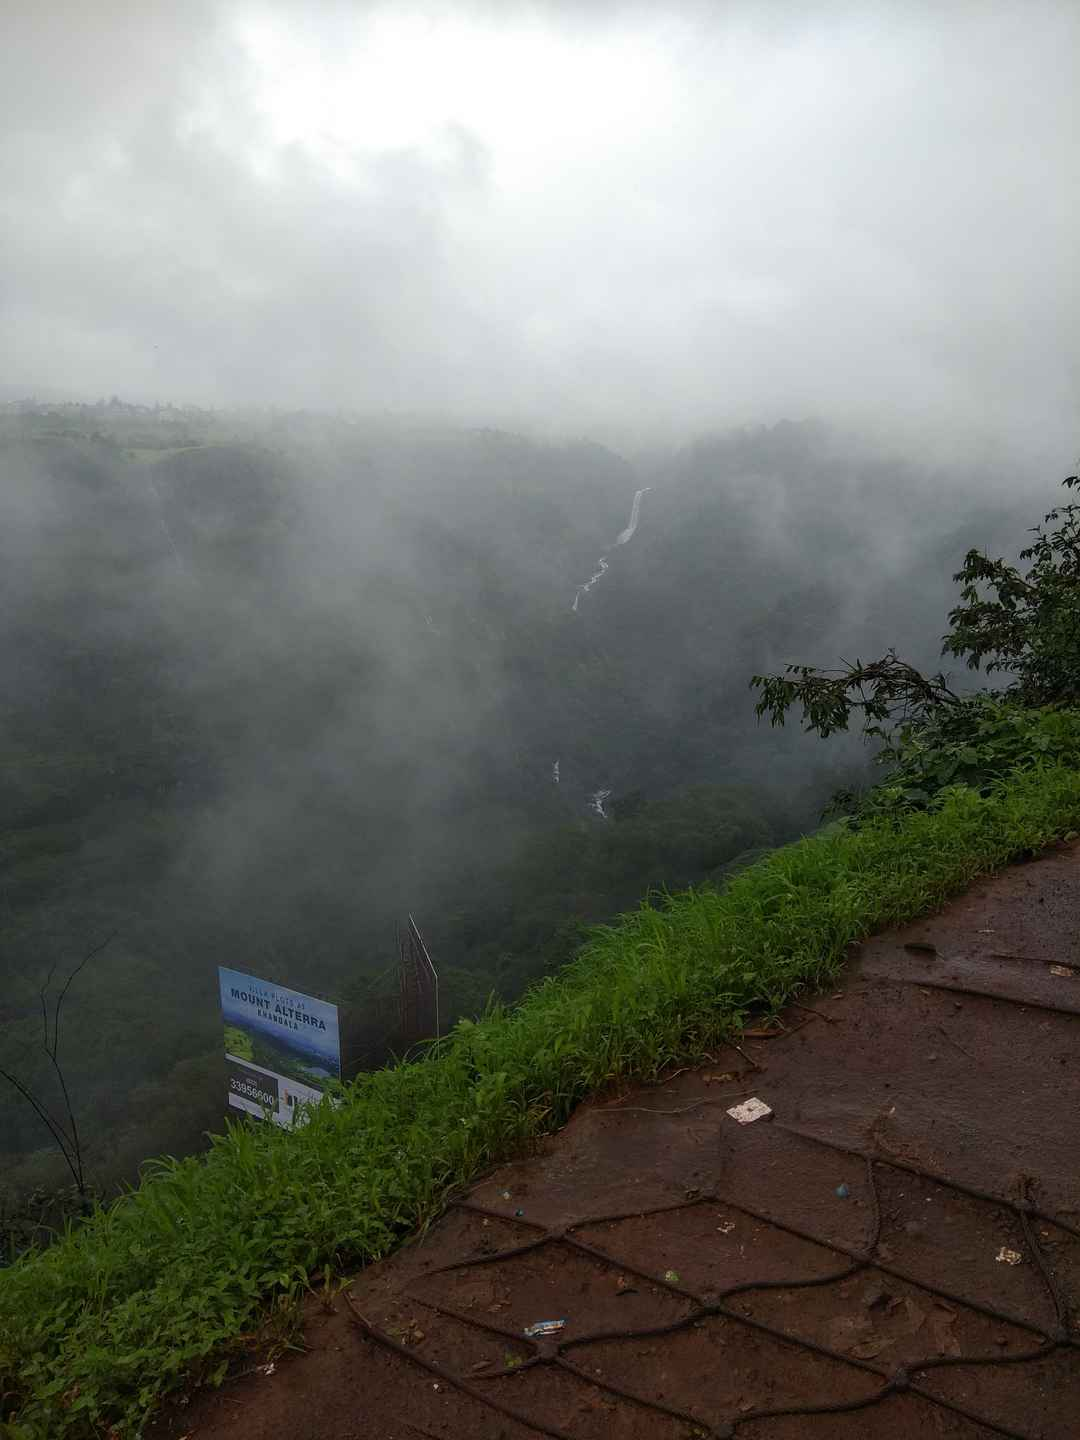 One day trip to Lonavla from Pune